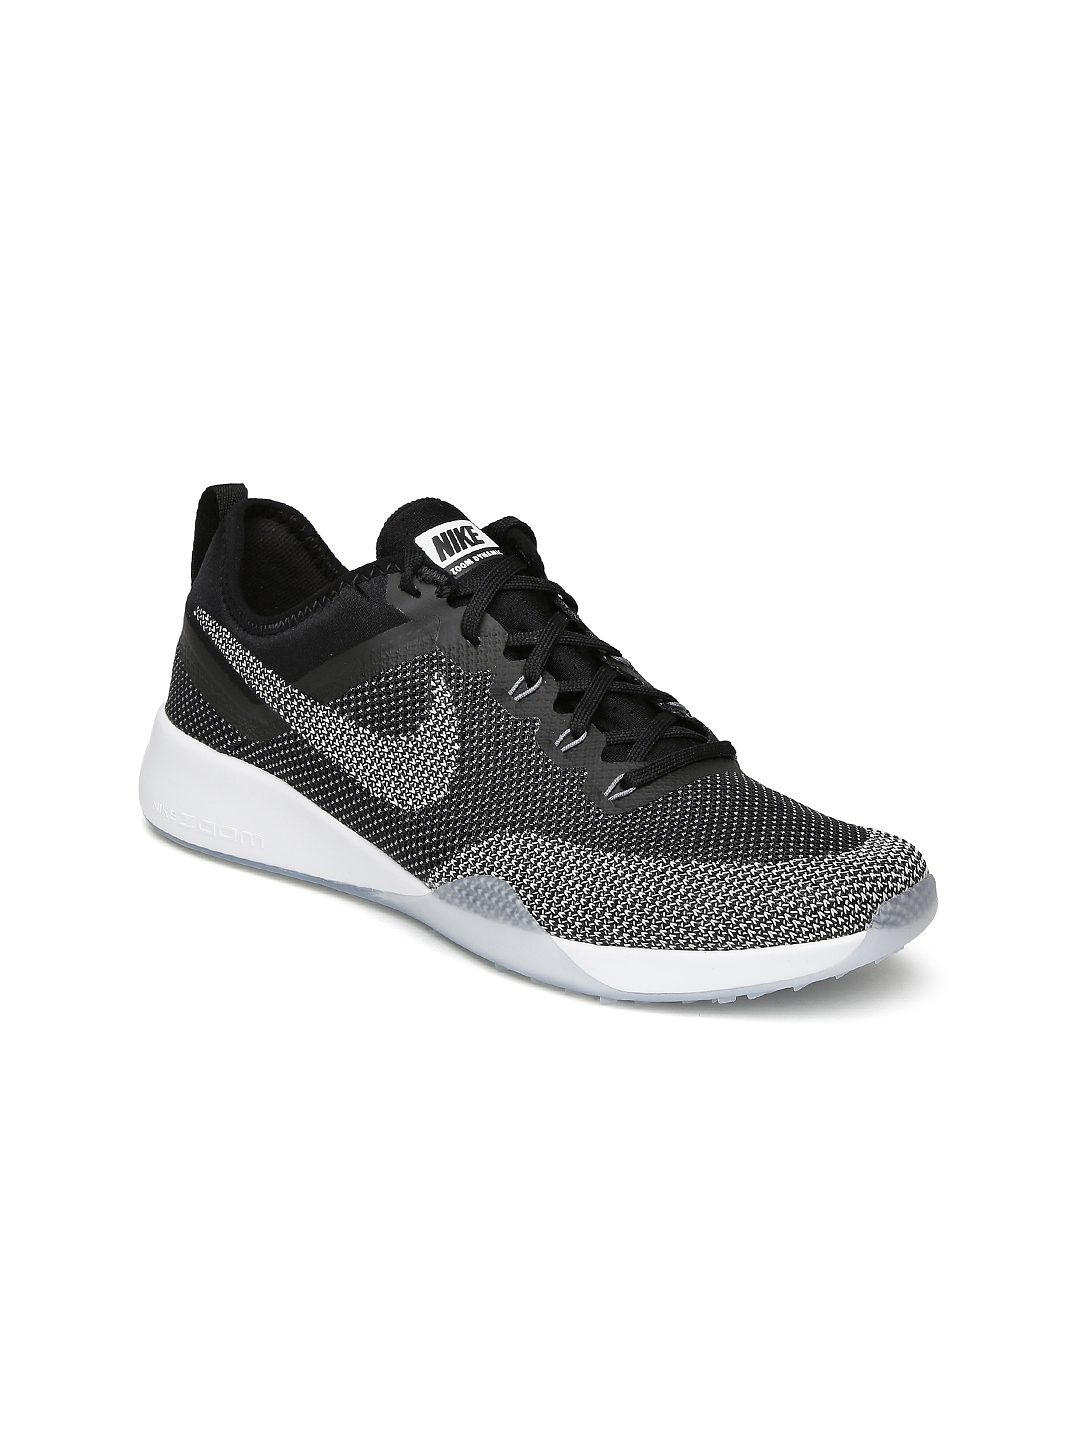 cheap for discount 57ead dd00e 7ccd341c-119d-4ec9-981e-9ec648bd02821548918636153-Nike-Women-Black-NIKE -AIR-ZOOM-TR-DYNAMIC-Training-Shoes-622-1.jpg